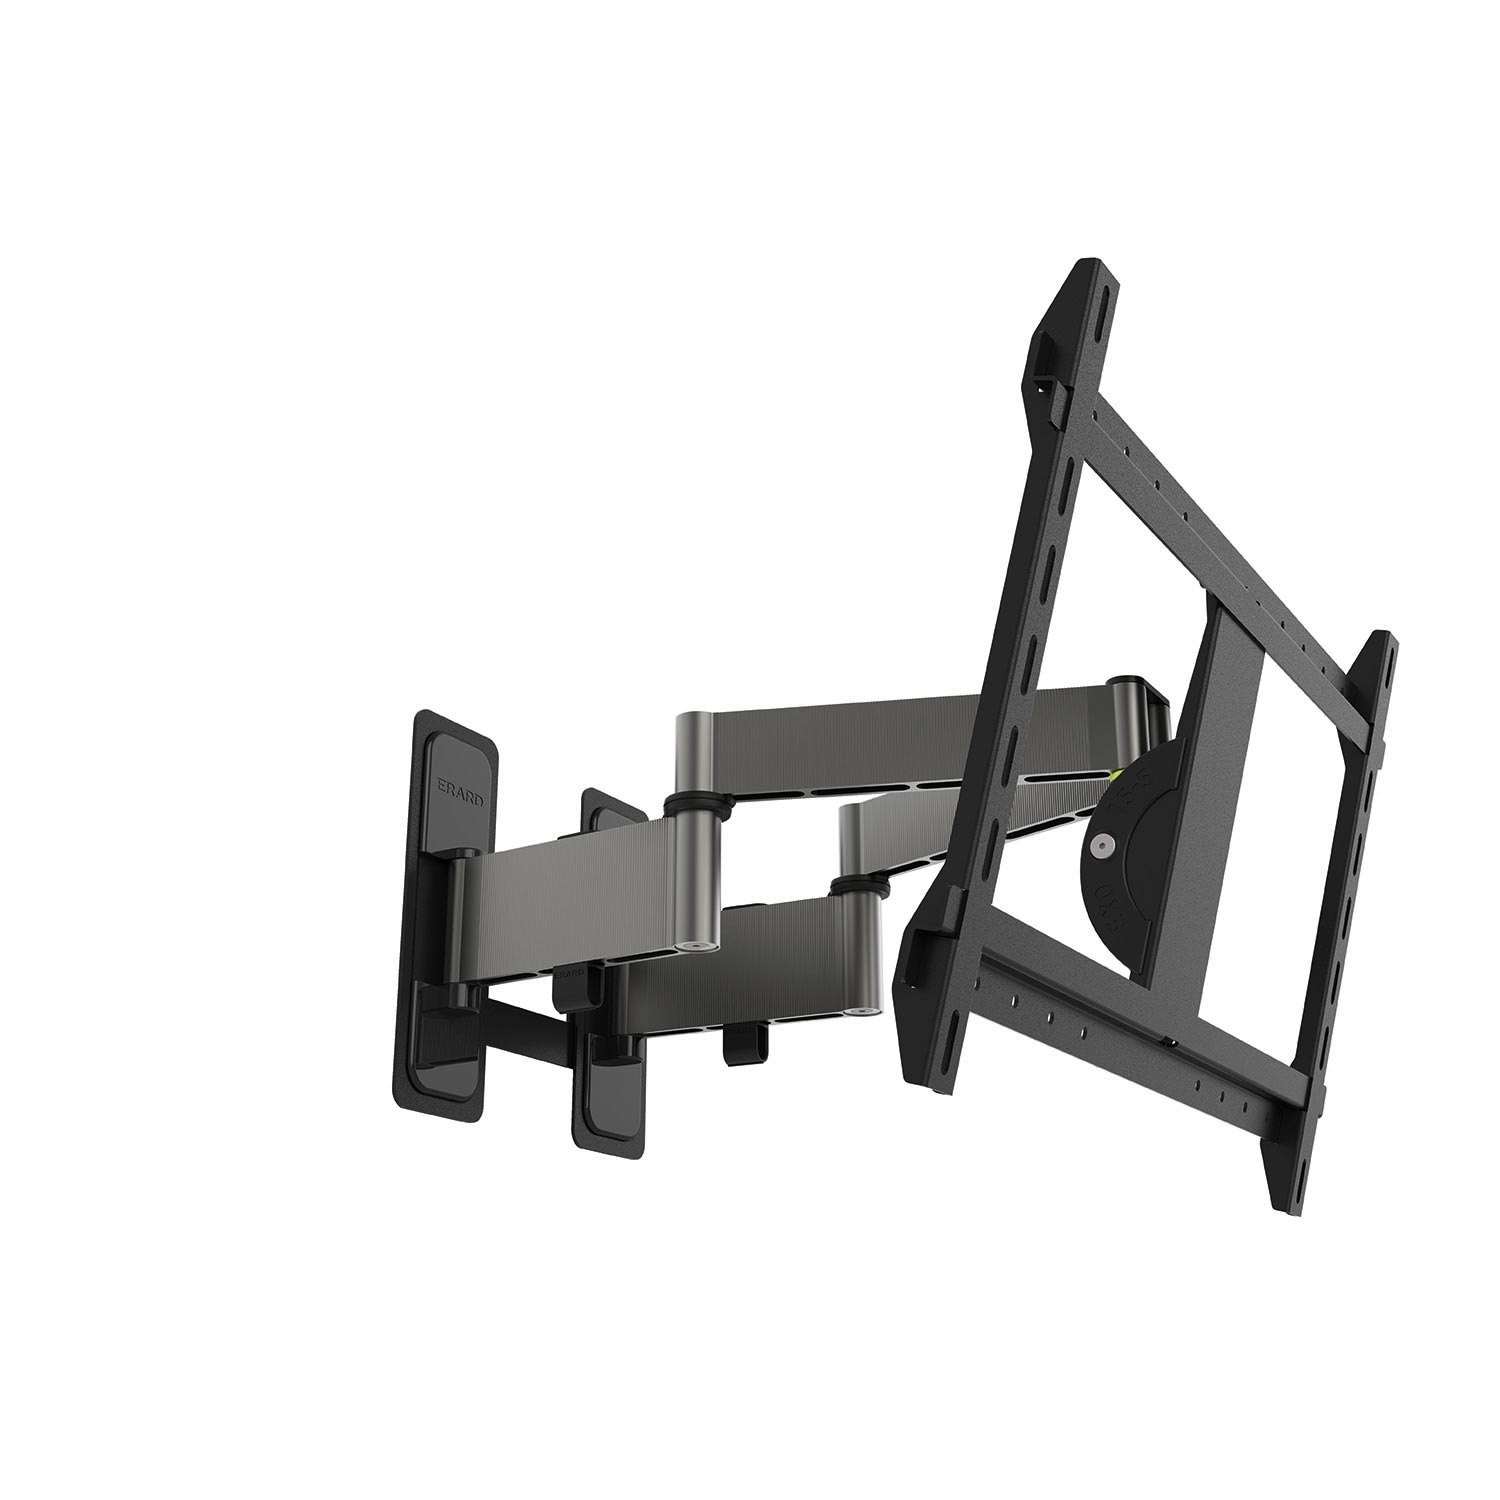 EXO XXLTW3 - support mural inclinable orientable